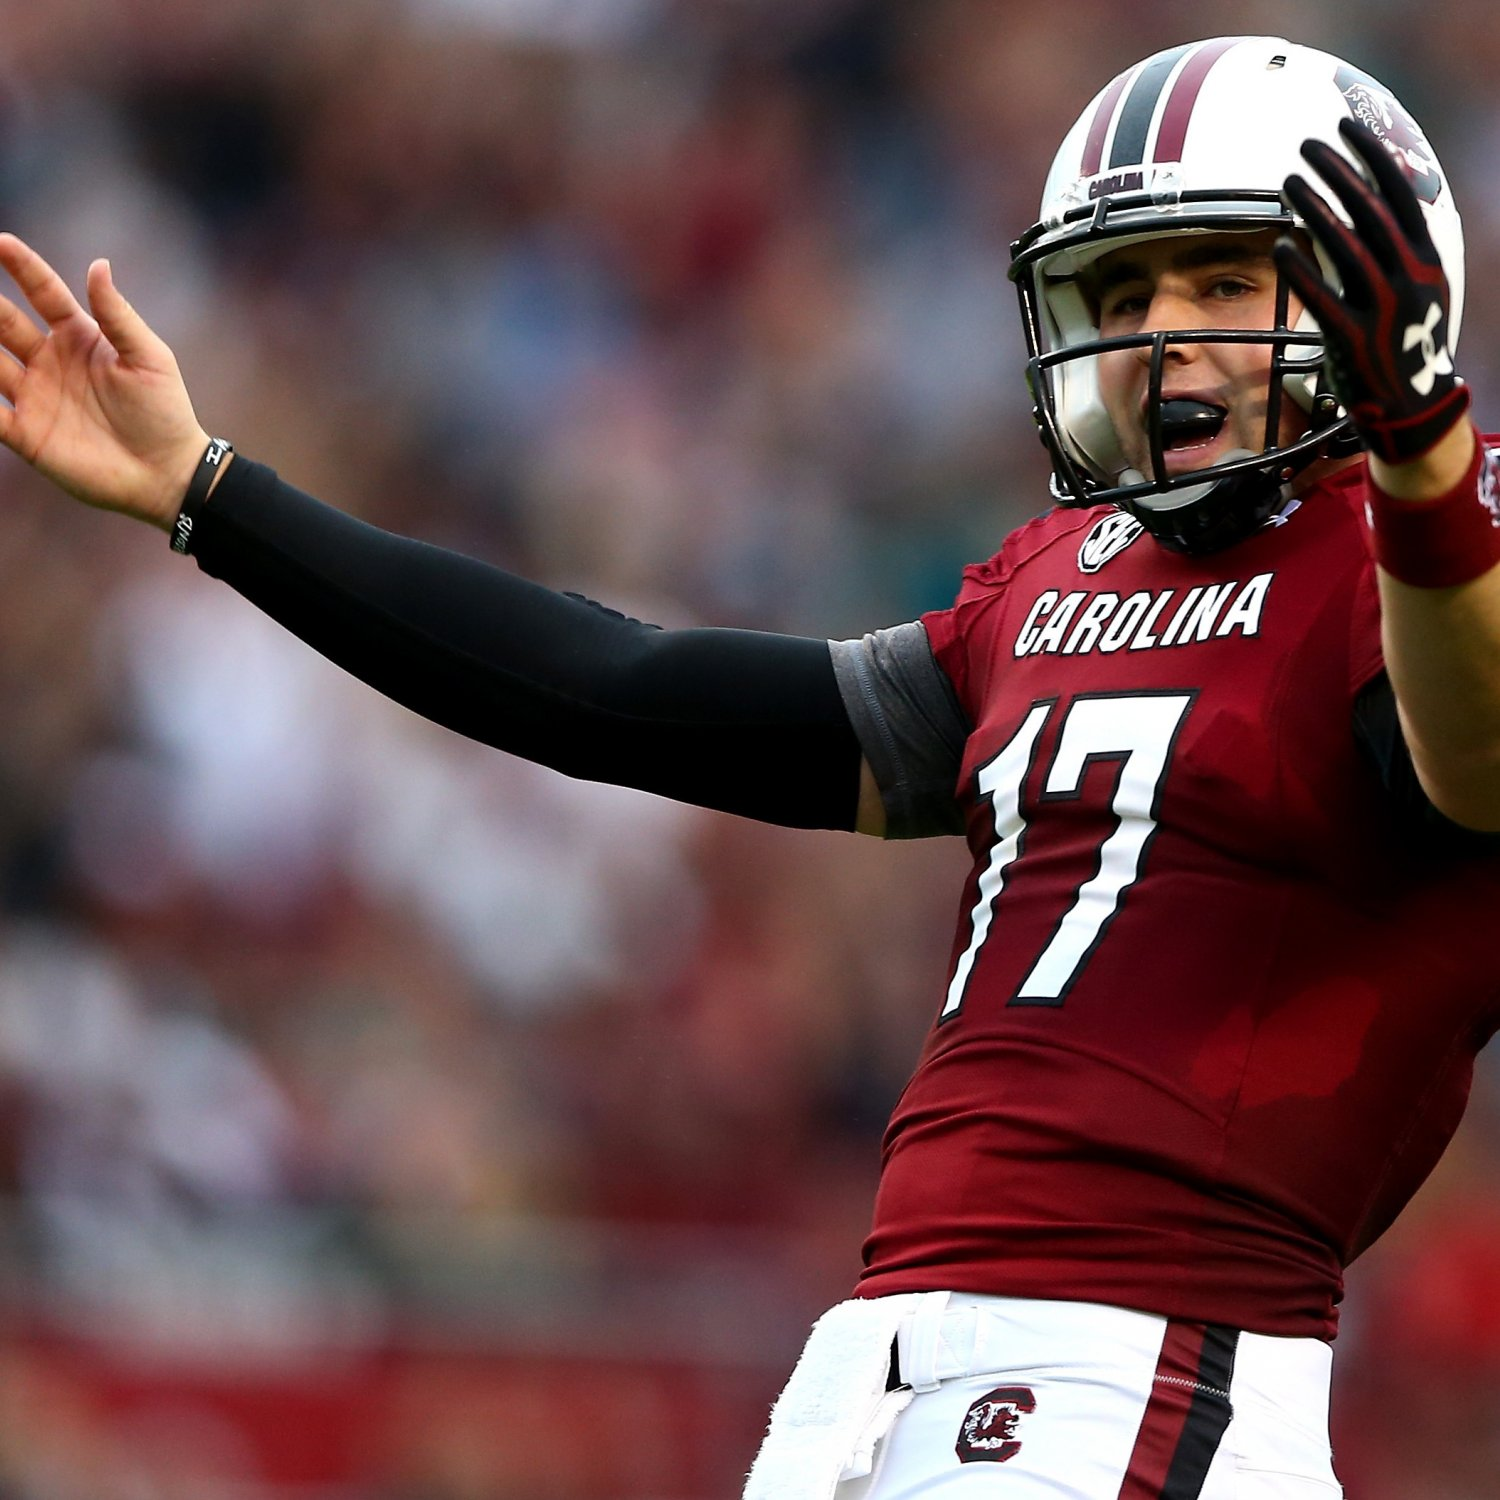 South Carolina Football: What to Watch for in Gamecocks ...